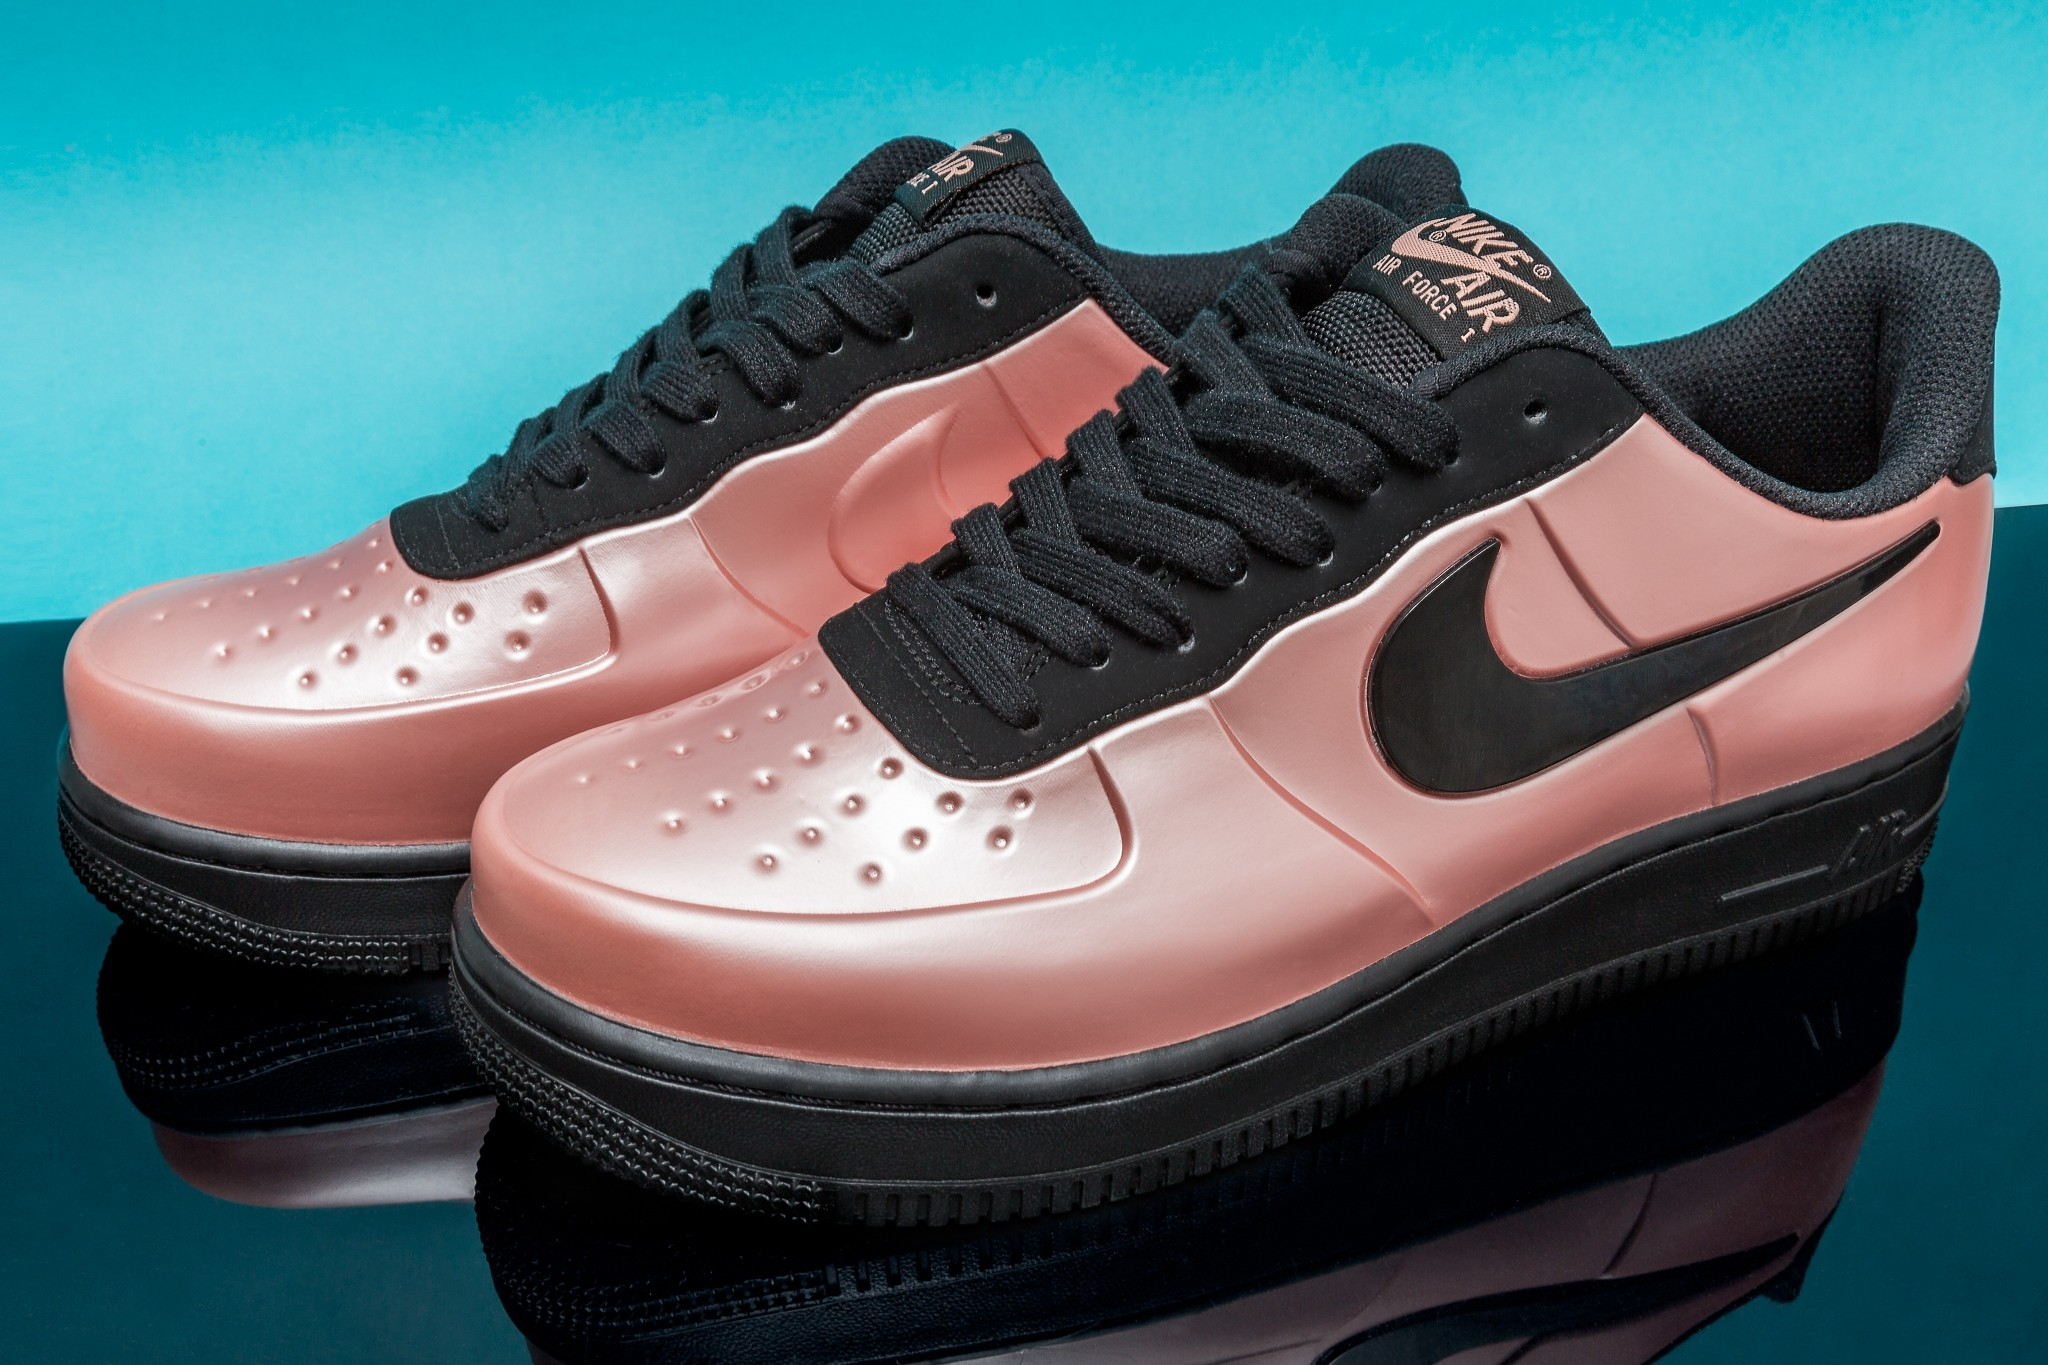 Now Available: Nike Air Force 1 Foamposite Pro Cup Coral